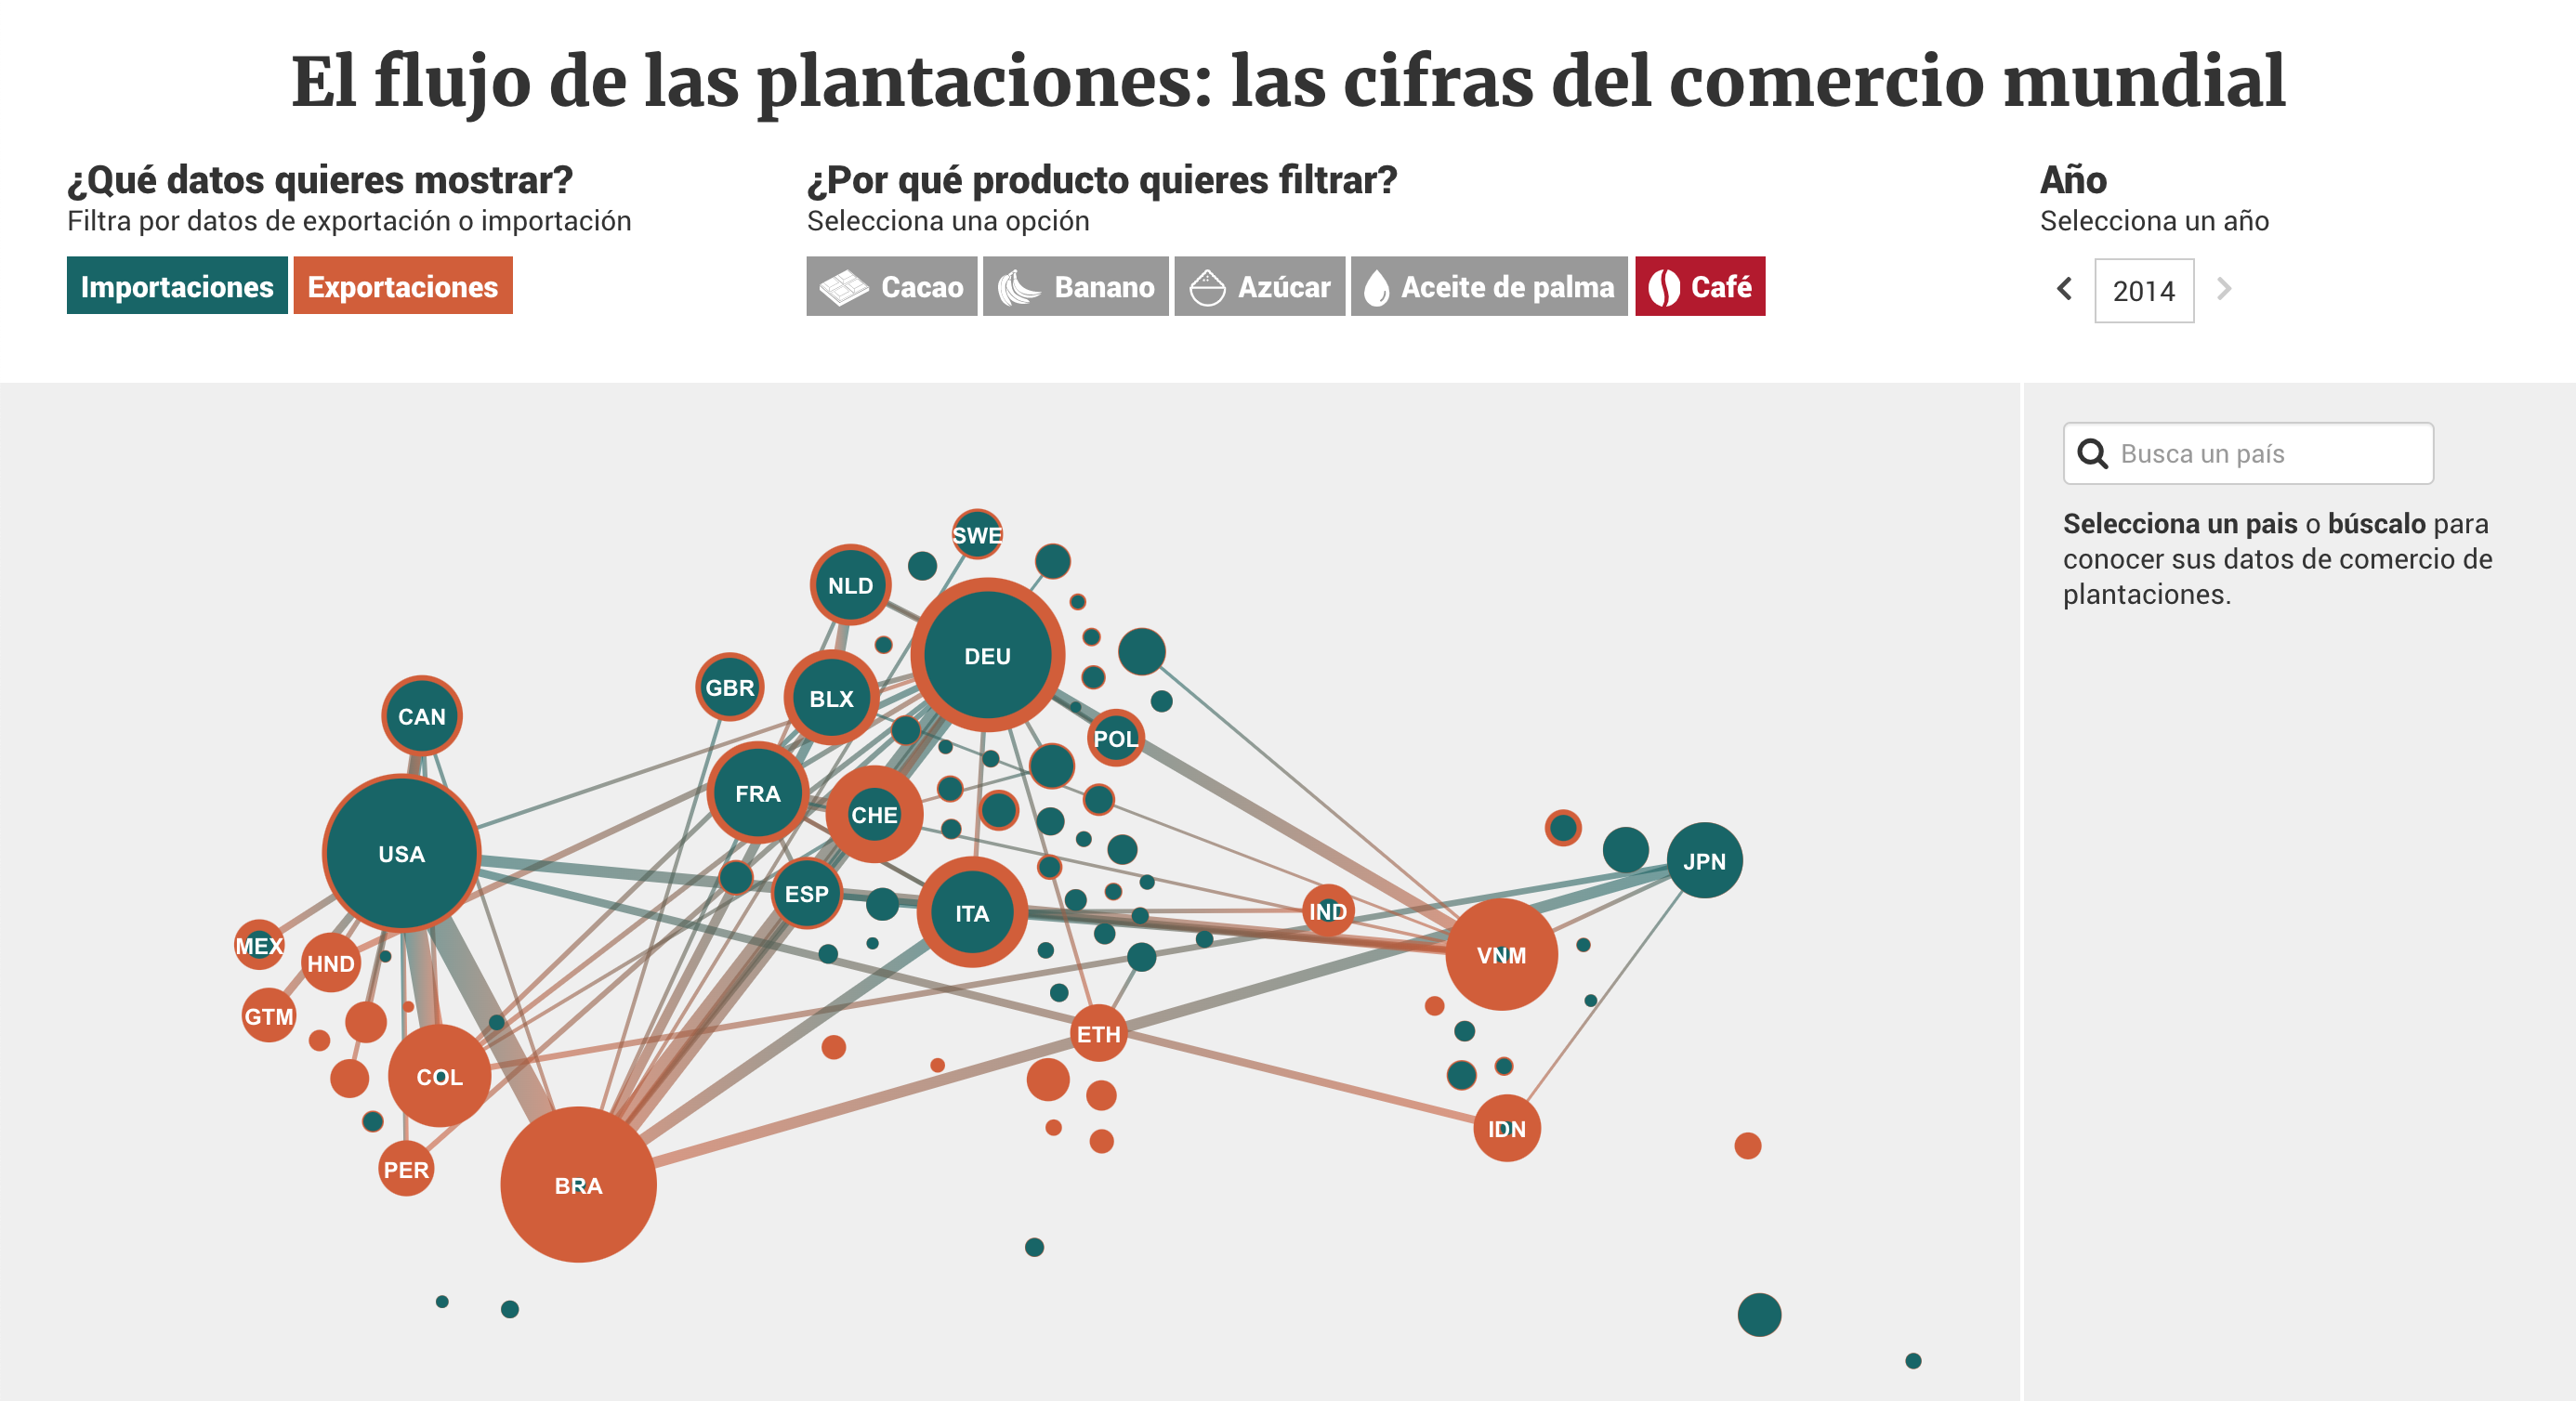 Figure 1.1. Network graph showing world imports and exports of coffee in 2014. Source: eldiario.es.